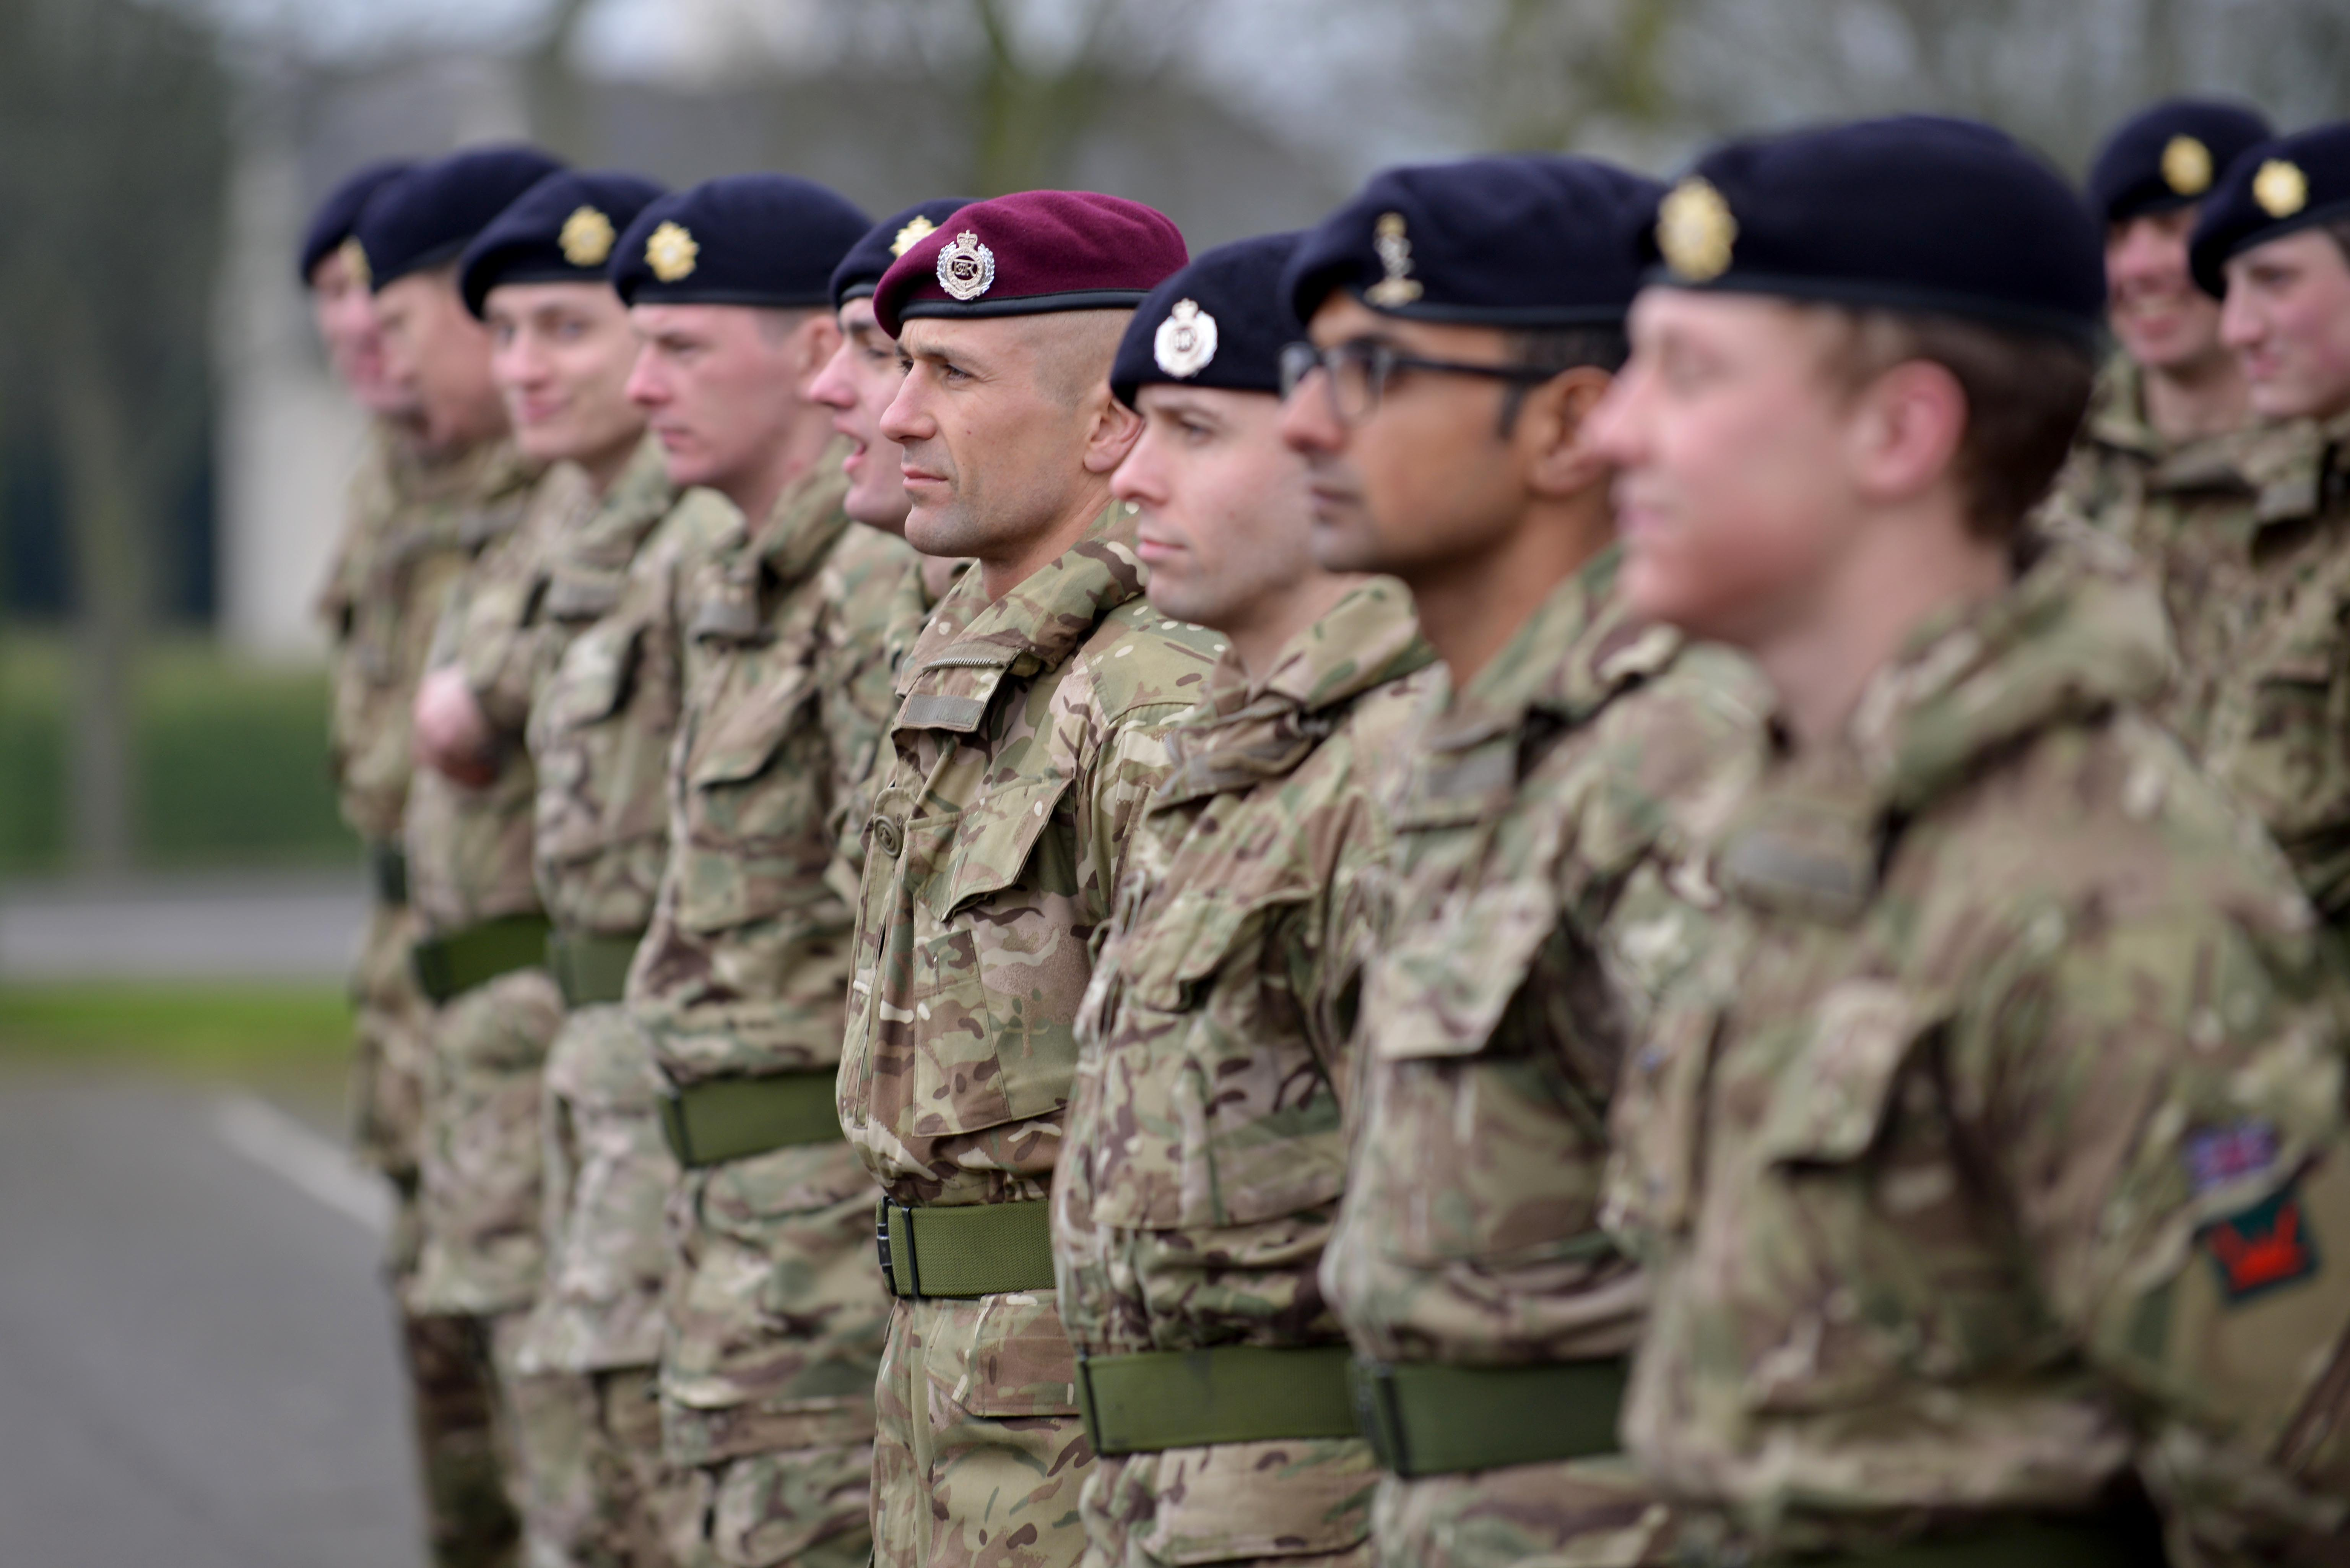 Our Schools and Colleges | The British Army